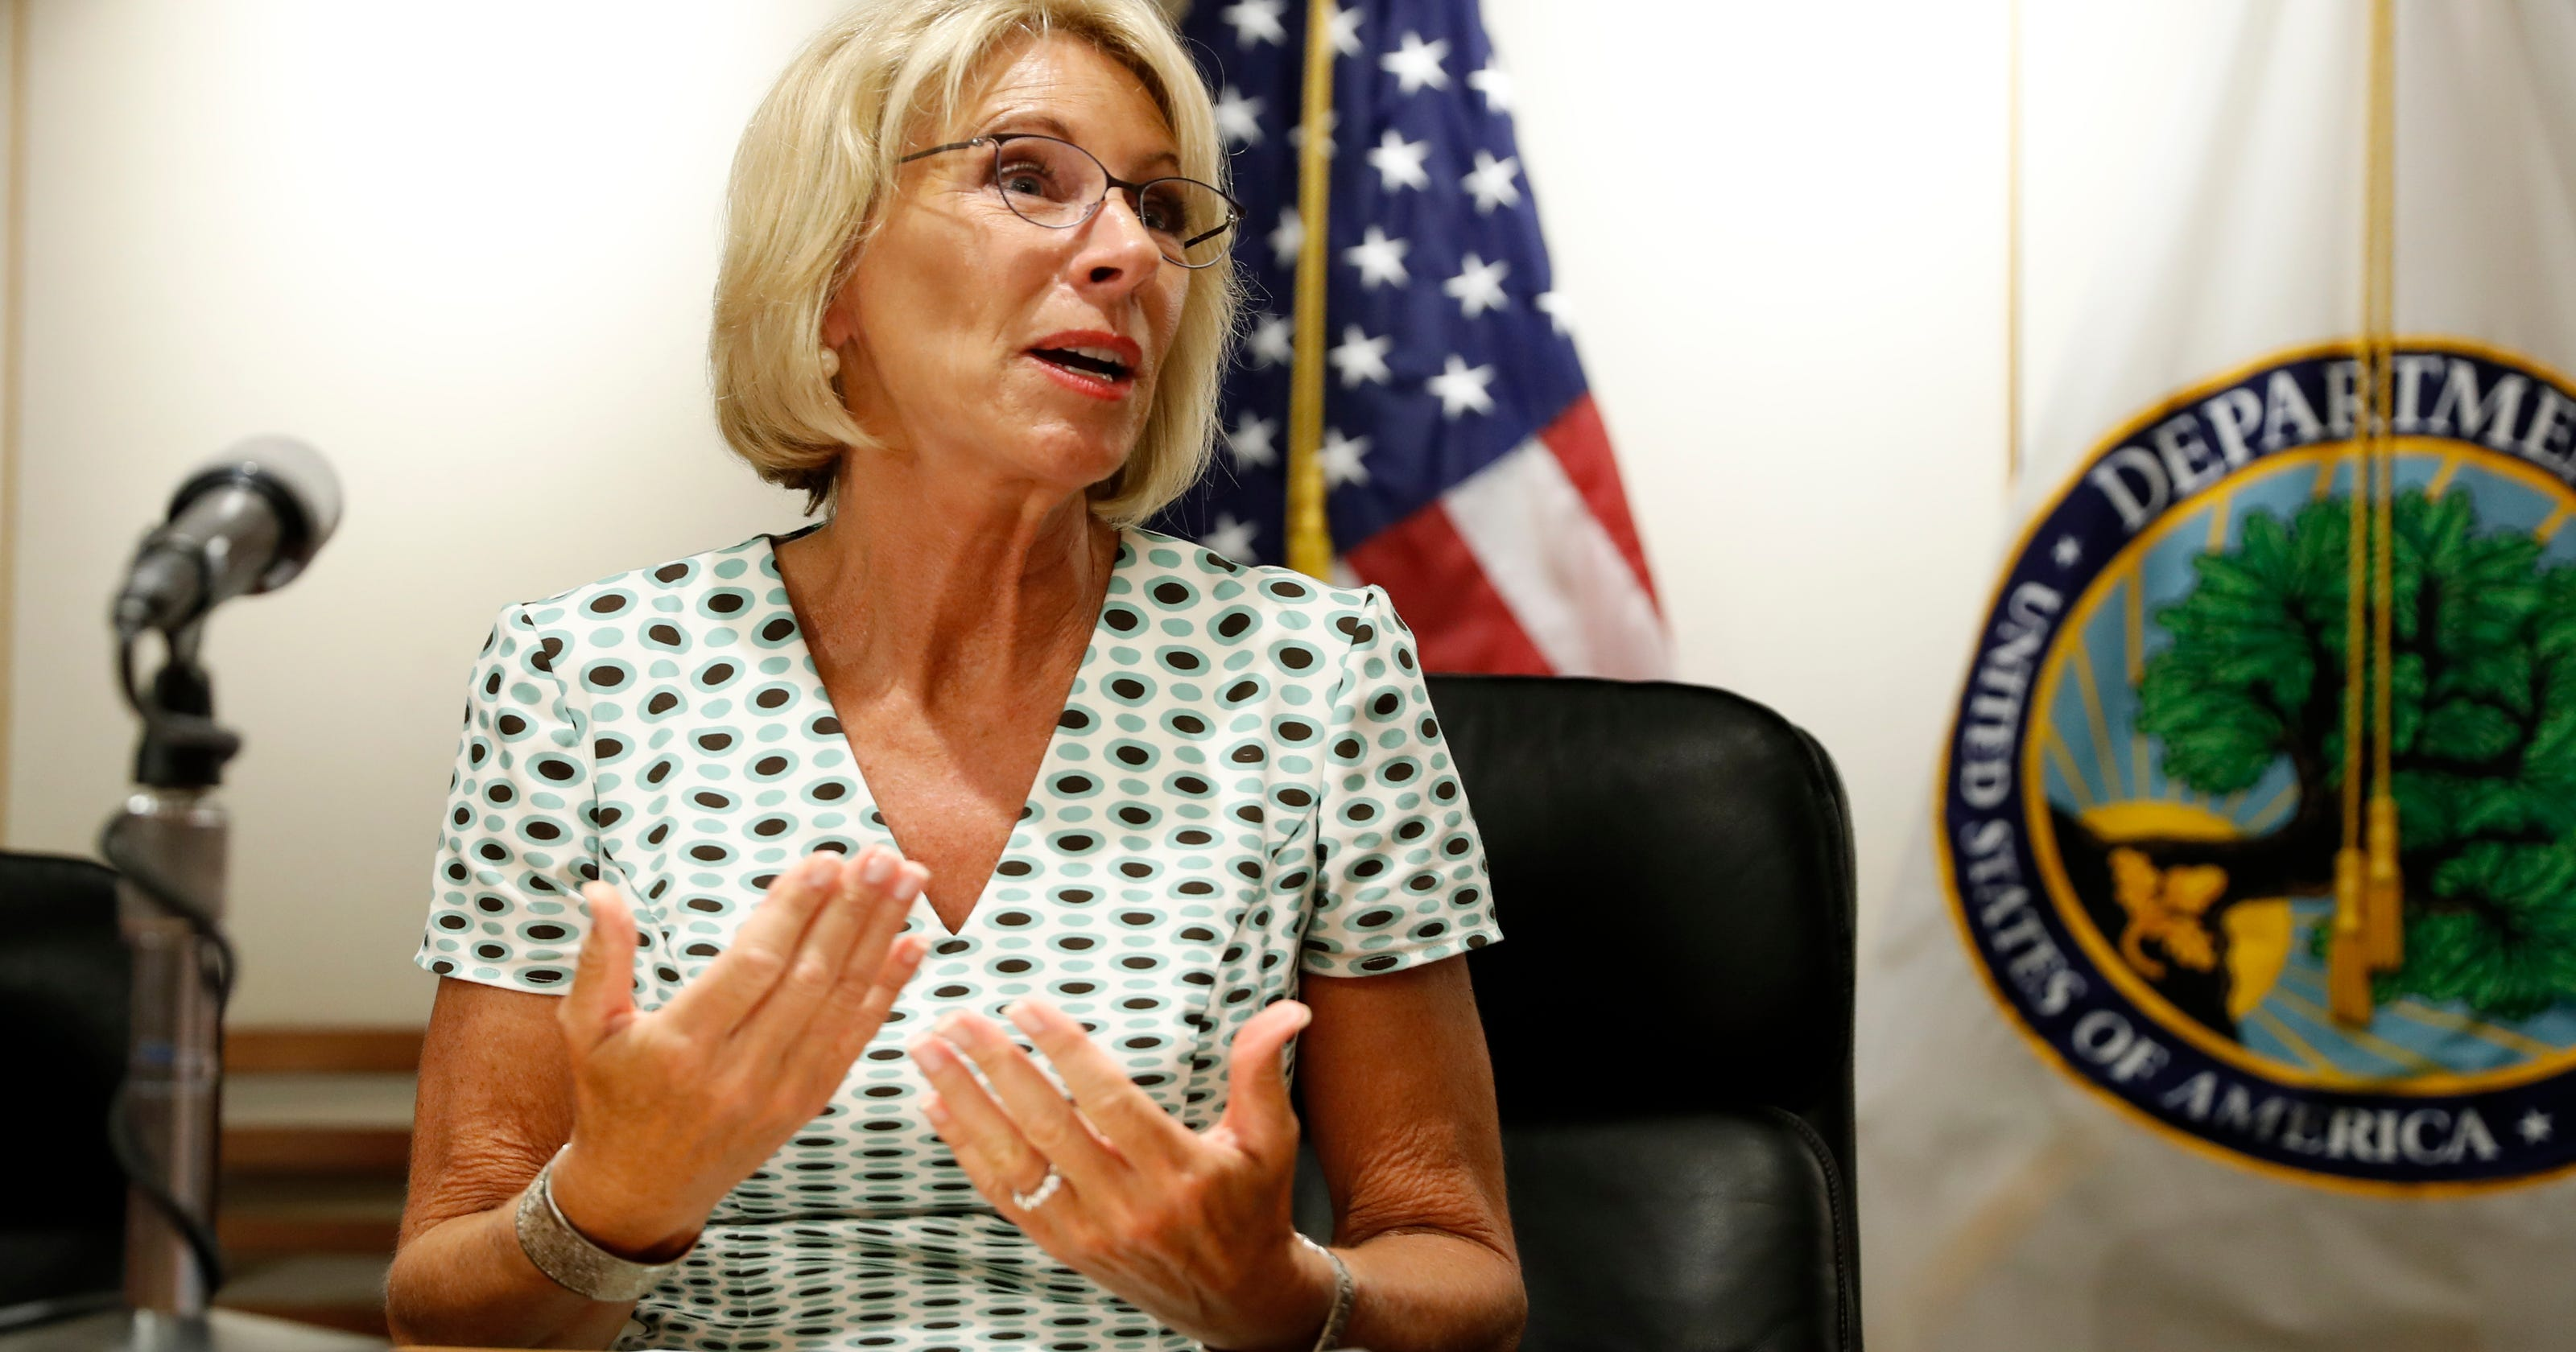 Advocates Demand Devos Protect Students >> Devos Is Right Sexual Assault Cases Should Not Ignore Due Process